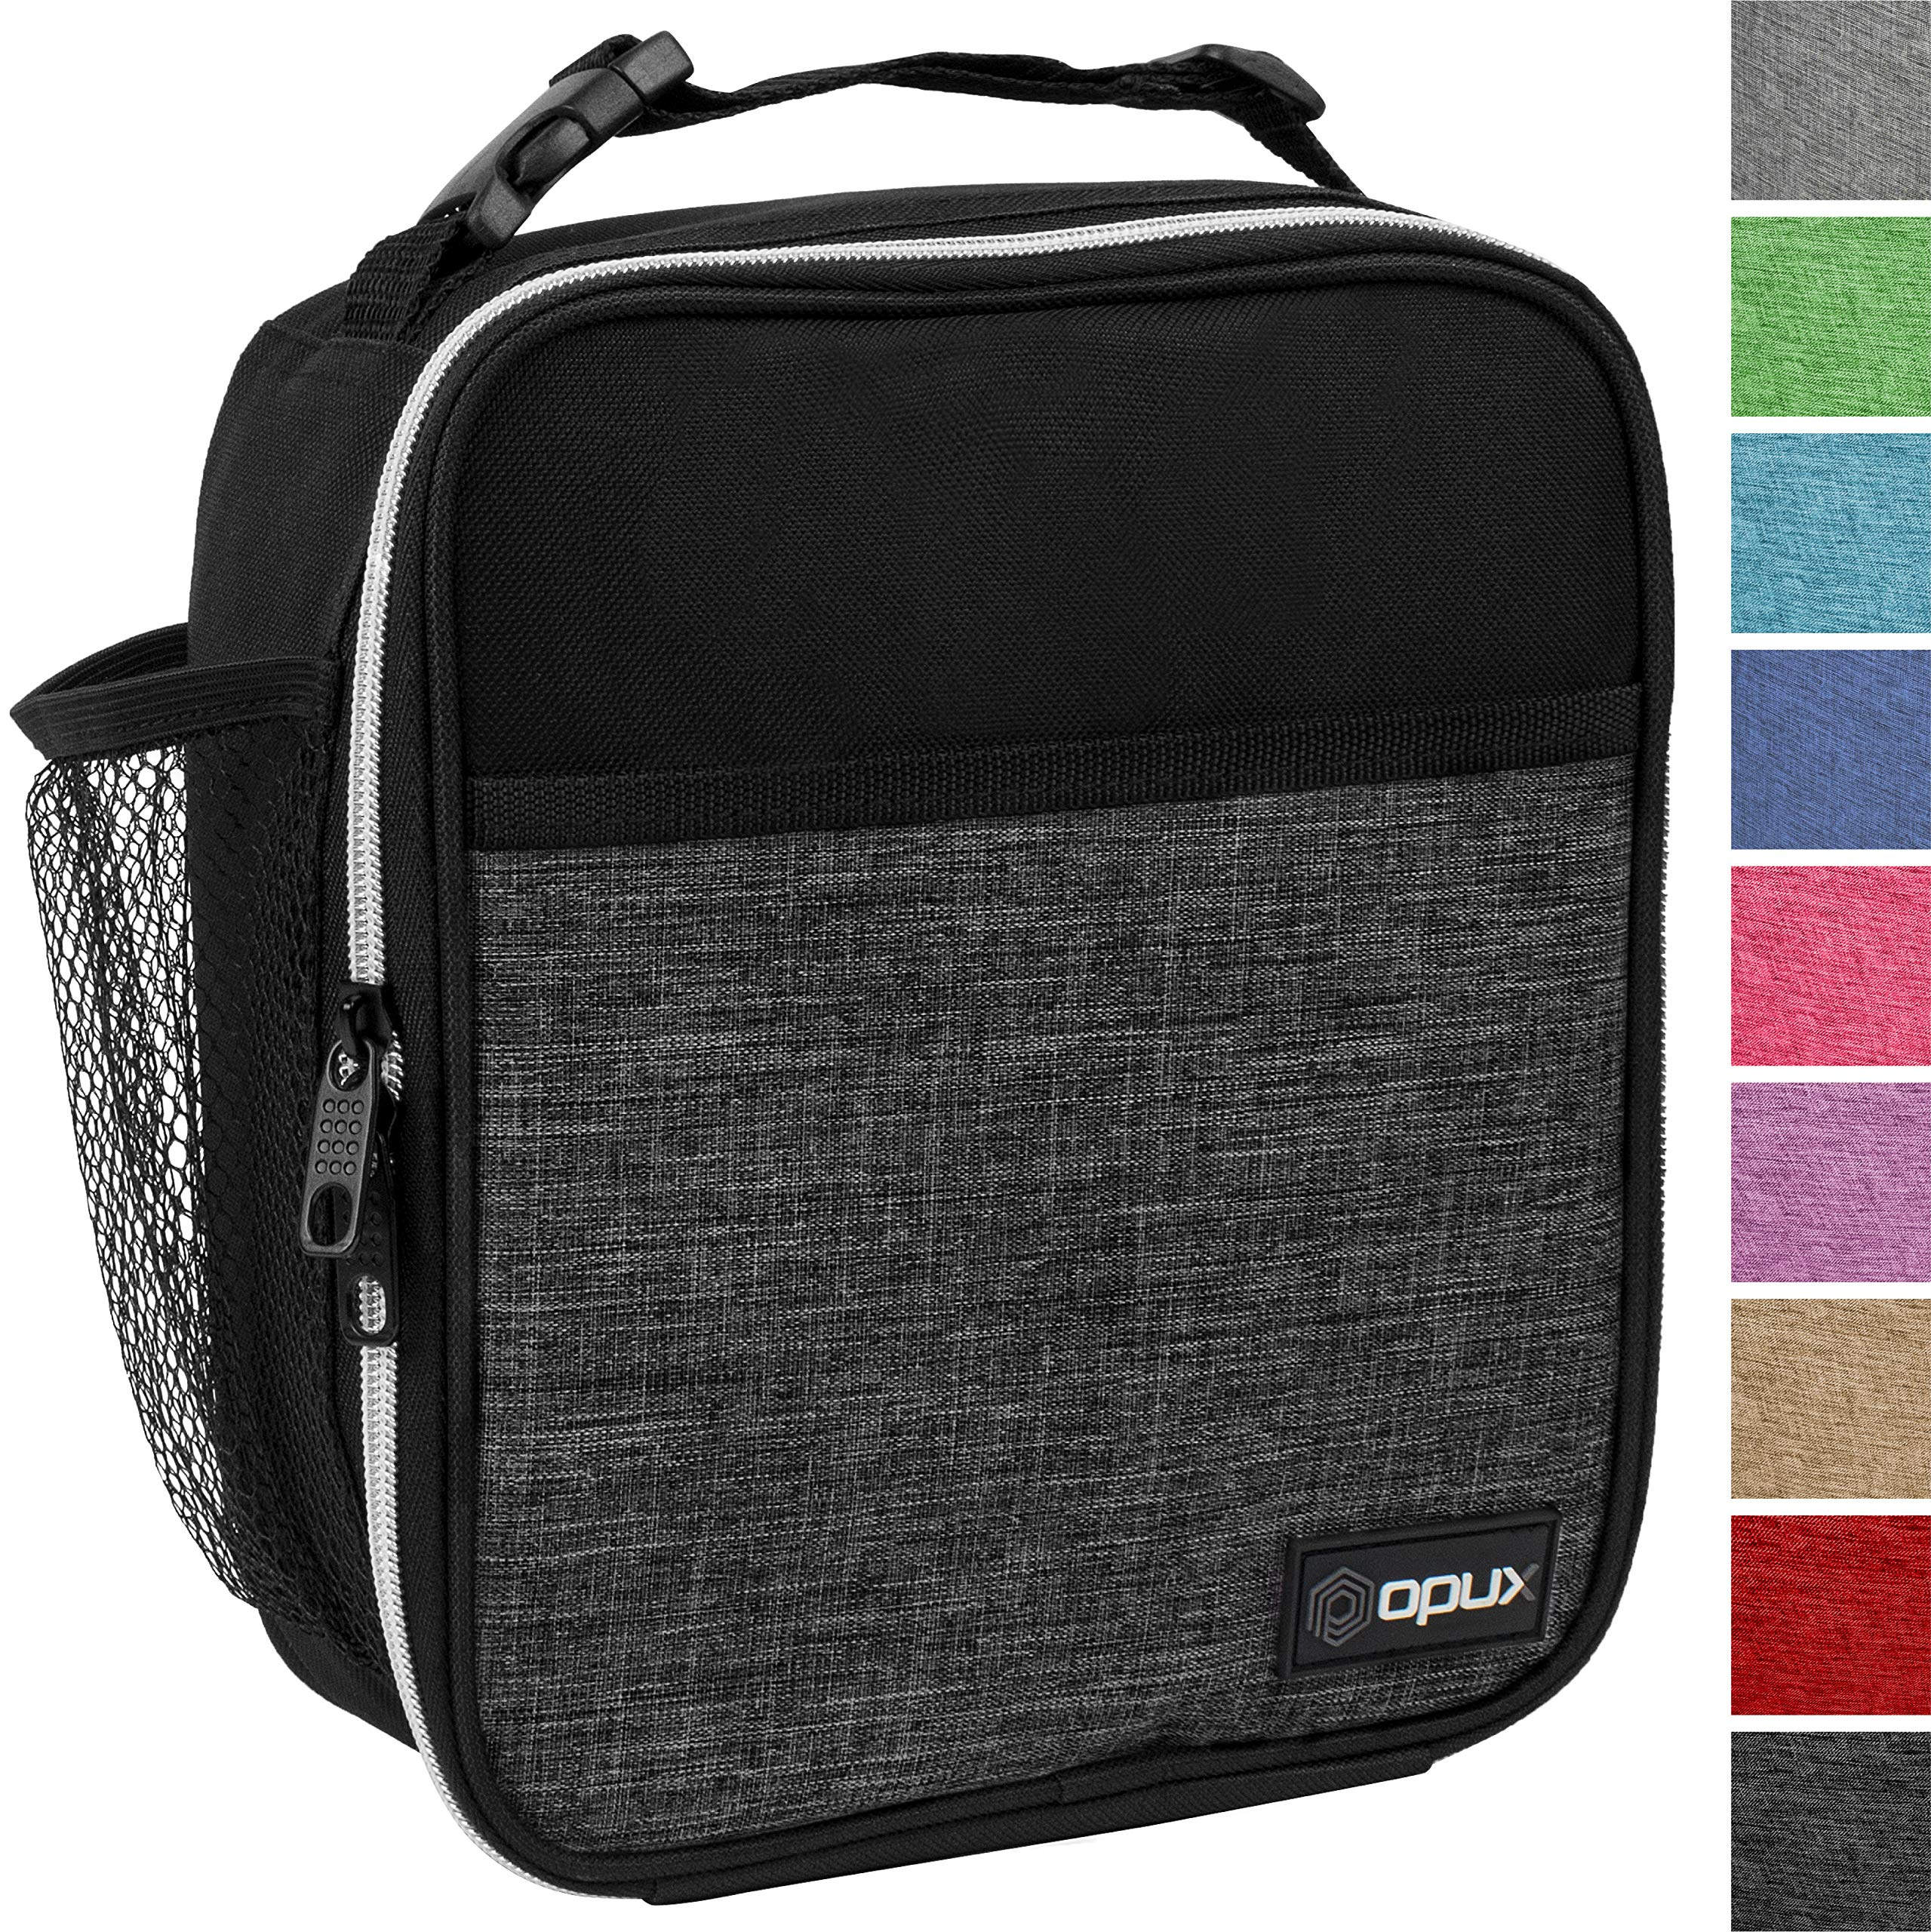 OPUX Premium Insulated Lunch Box | Soft Leakproof School Lunch Bag for Kids, Boys, Girls | Durable Reusable Work Lunch Pail Cooler for Adult Men, Women, Office Fits 6 Cans (Heather Charcoal) by OPUX